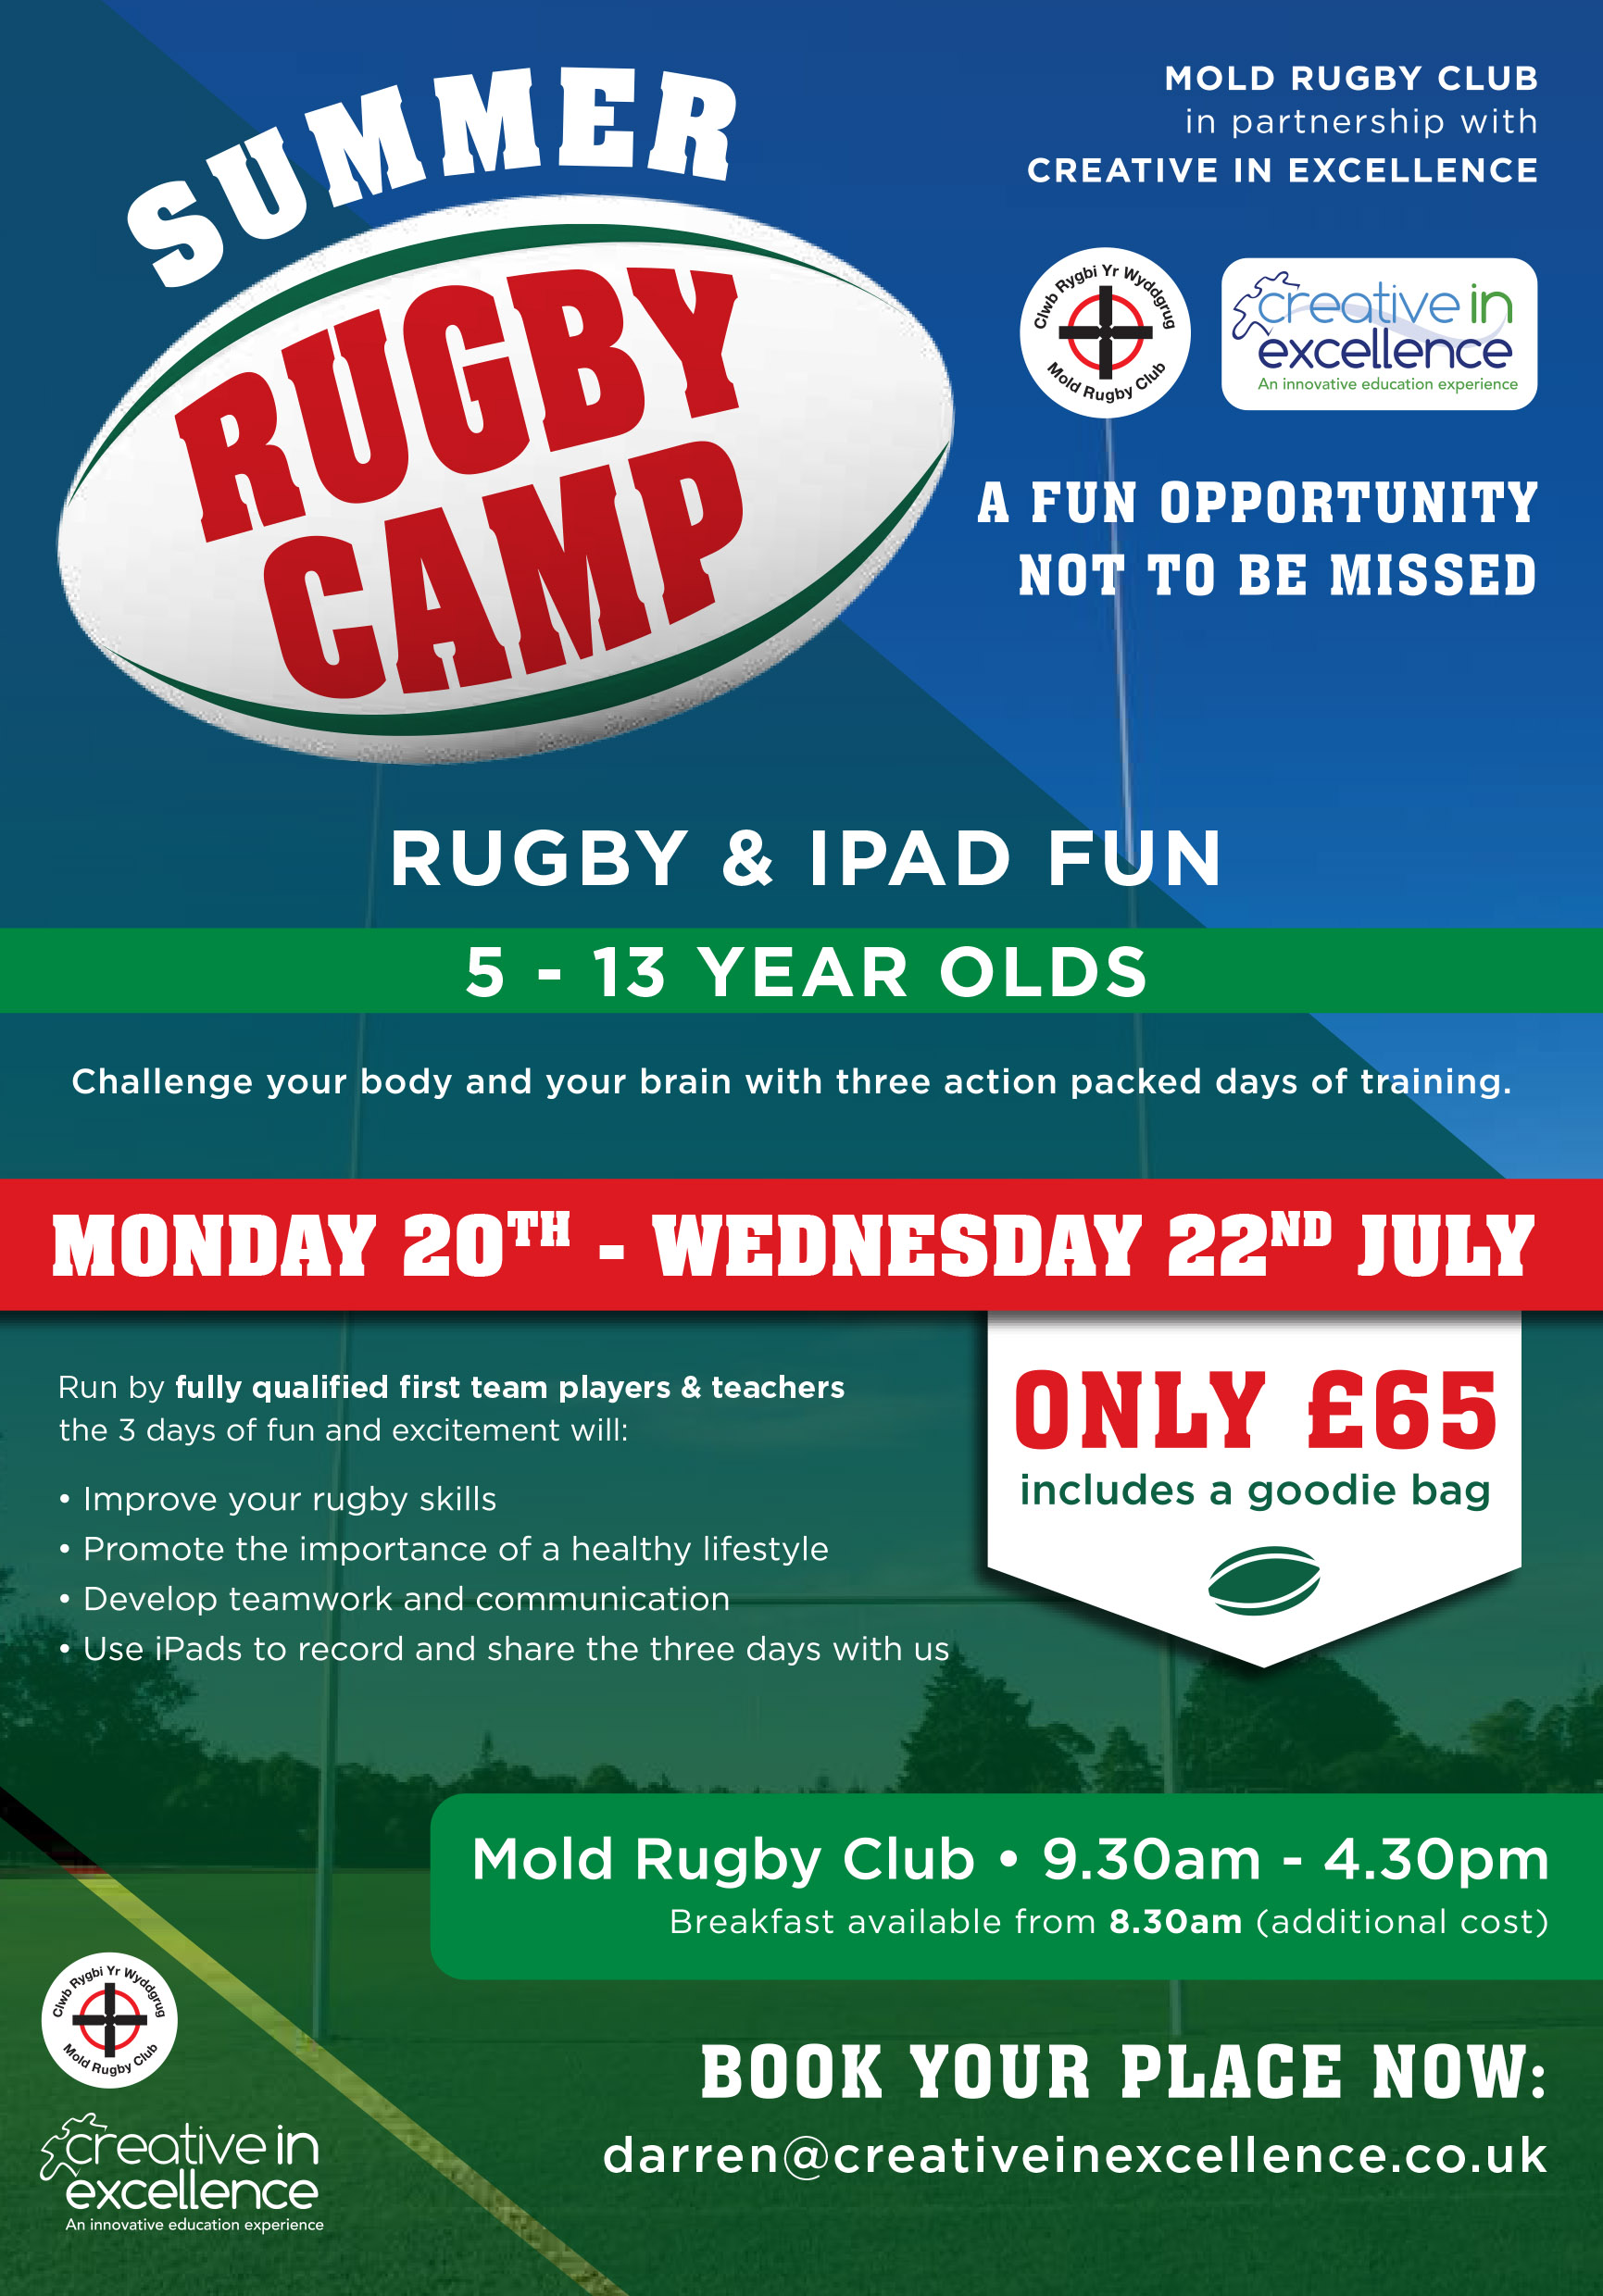 north wales ruc news rugby summer camp to be held at. Black Bedroom Furniture Sets. Home Design Ideas